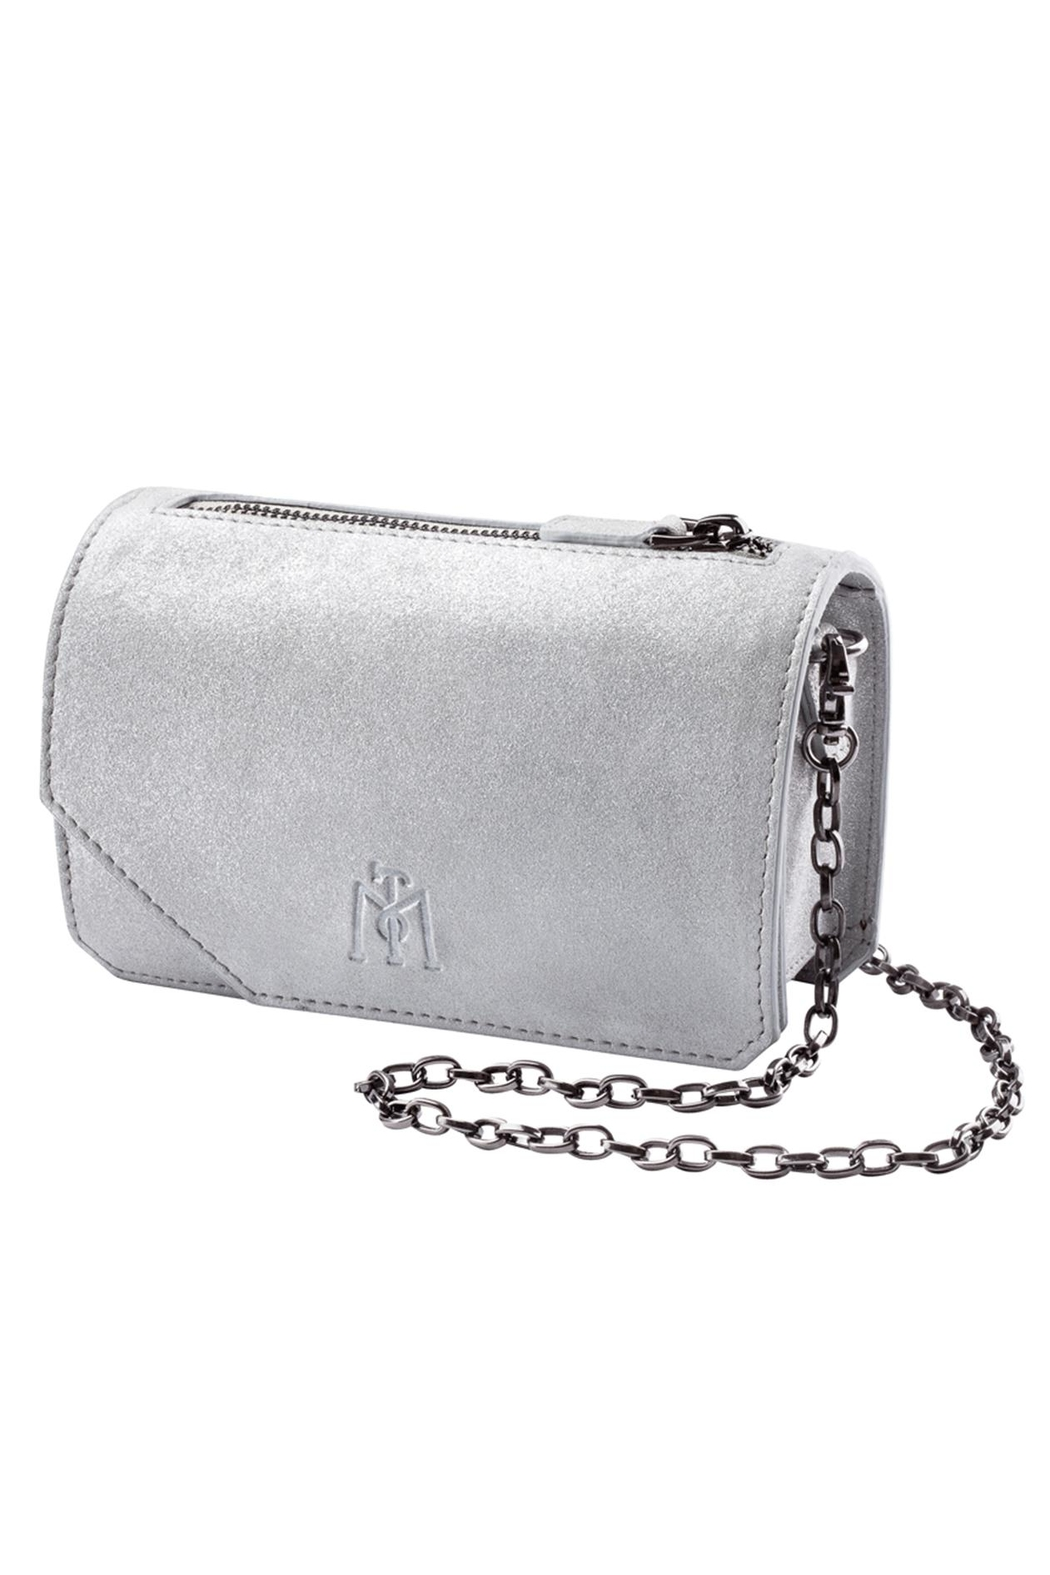 Martella Bags White Leather Clutch - Main Image